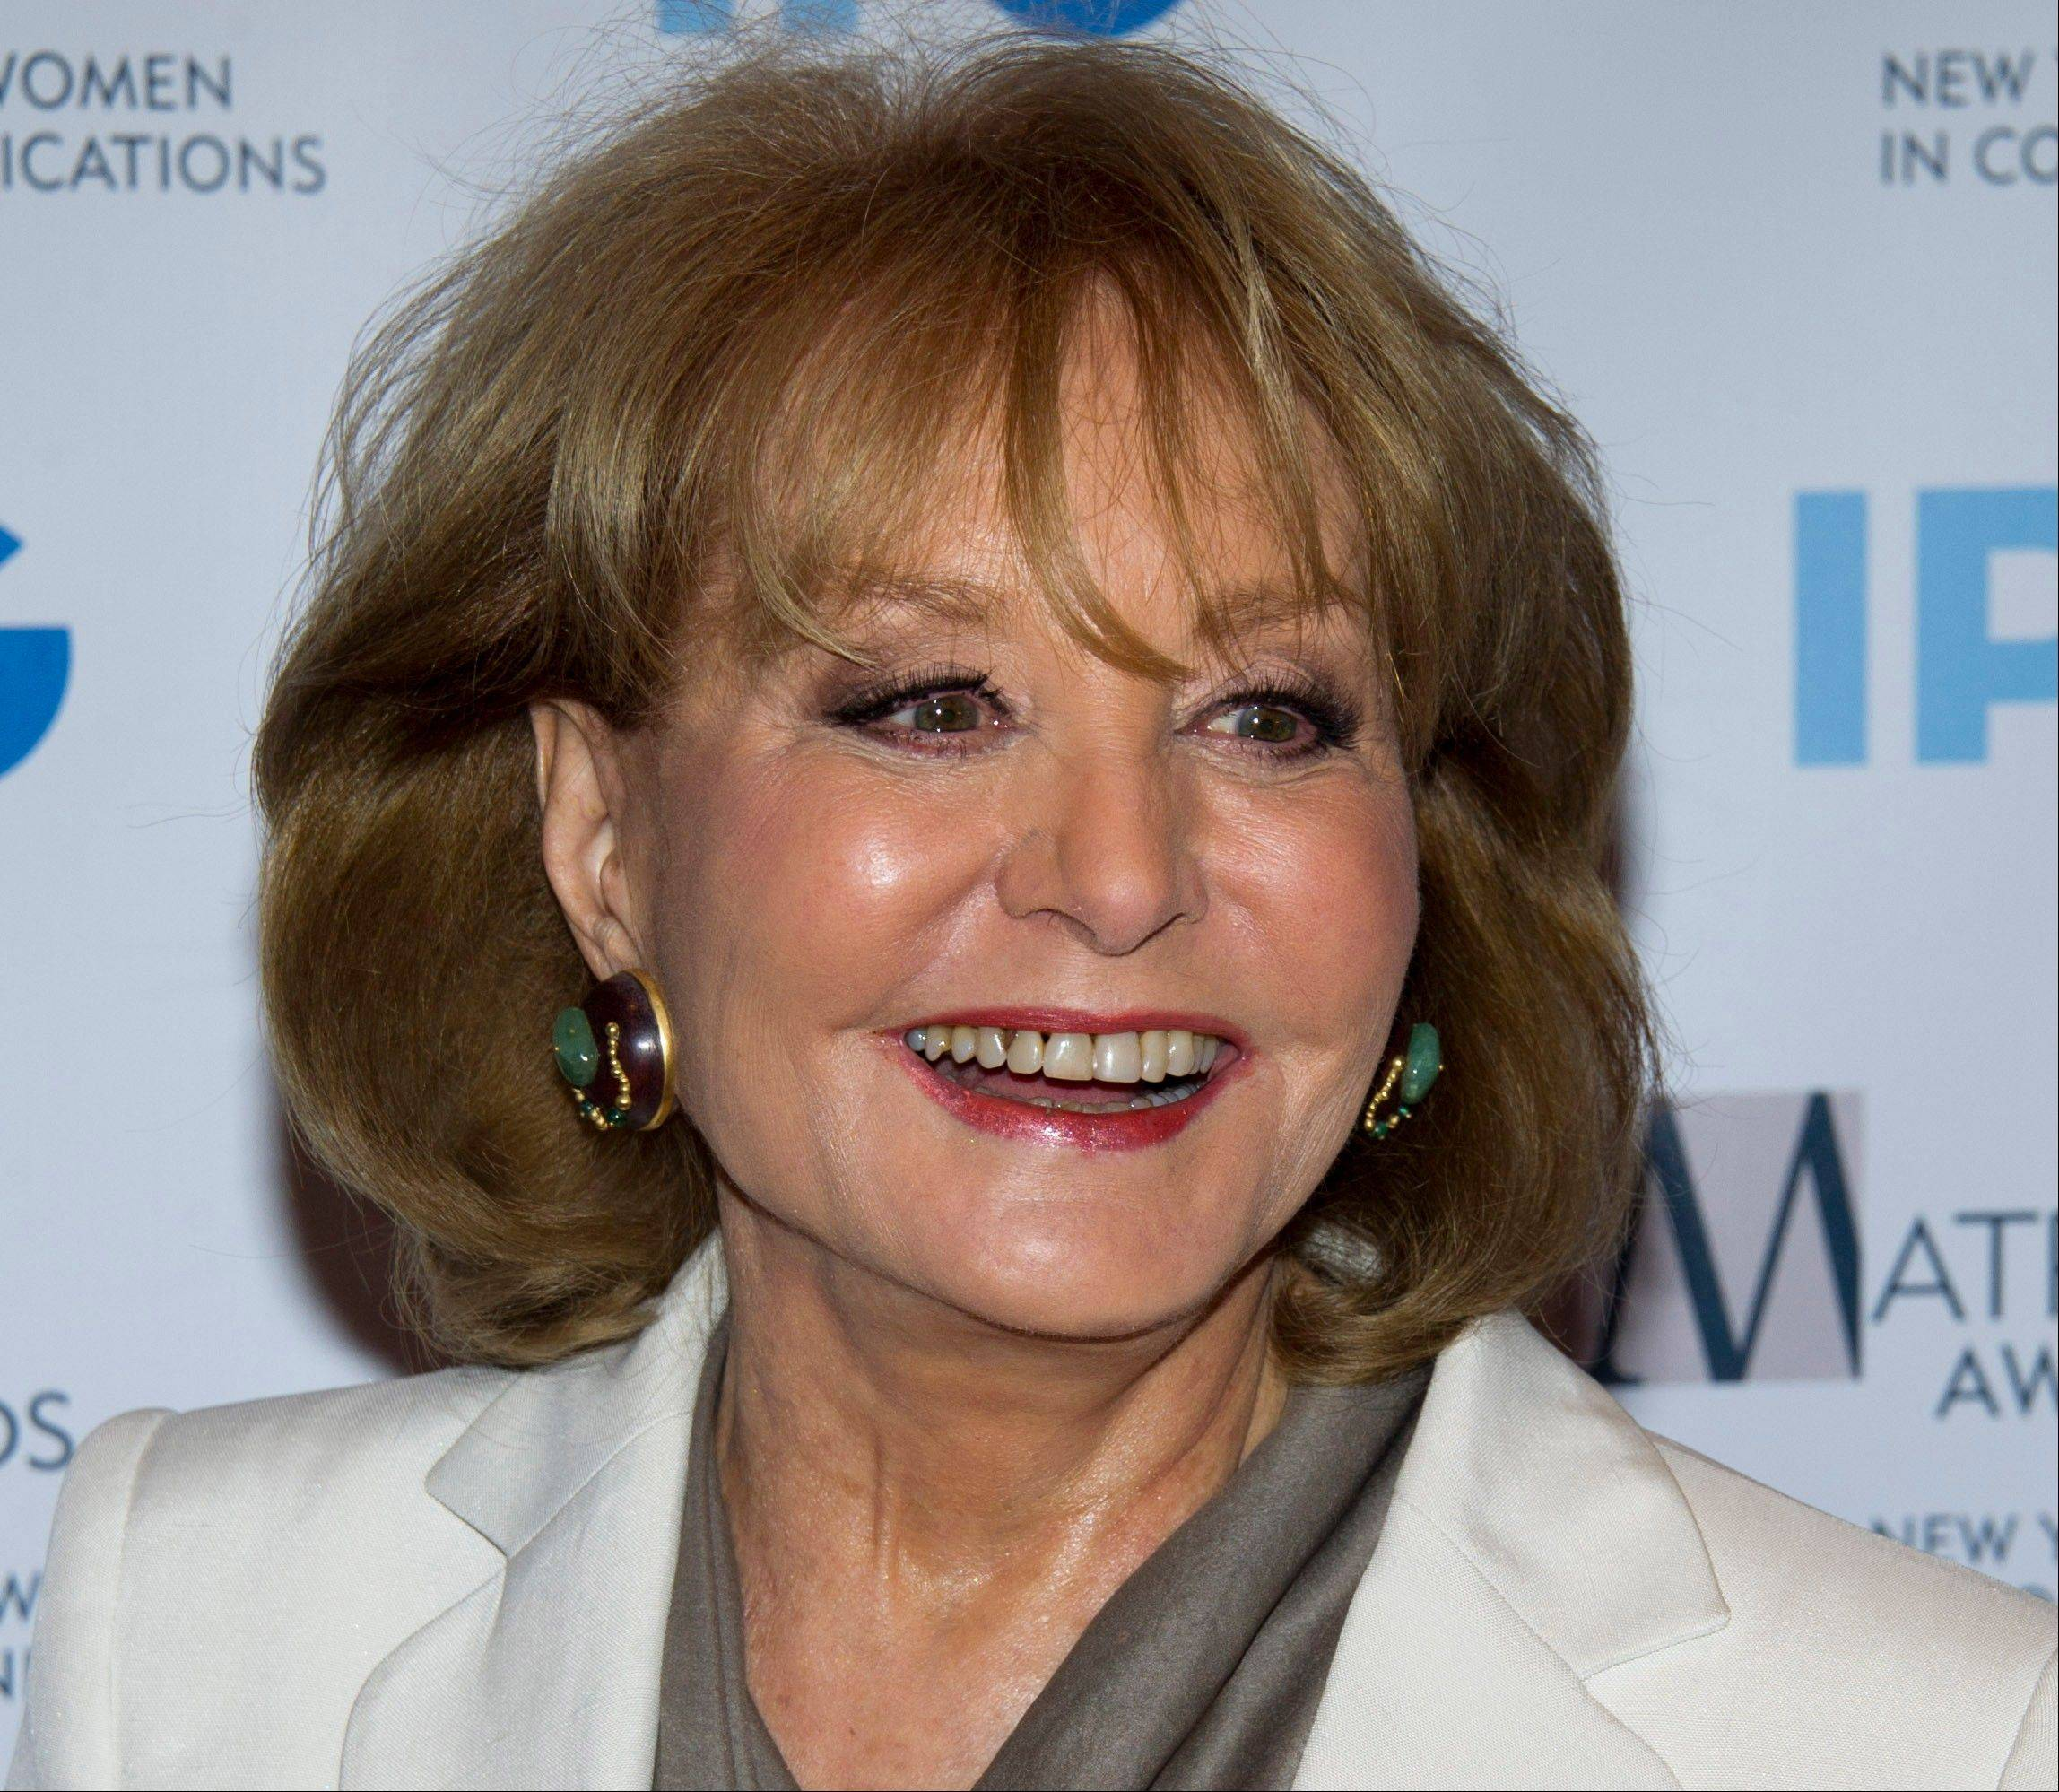 Veteran ABC newswoman Barbara Walters said Tuesday she hopes to be leaving the hospital soon.